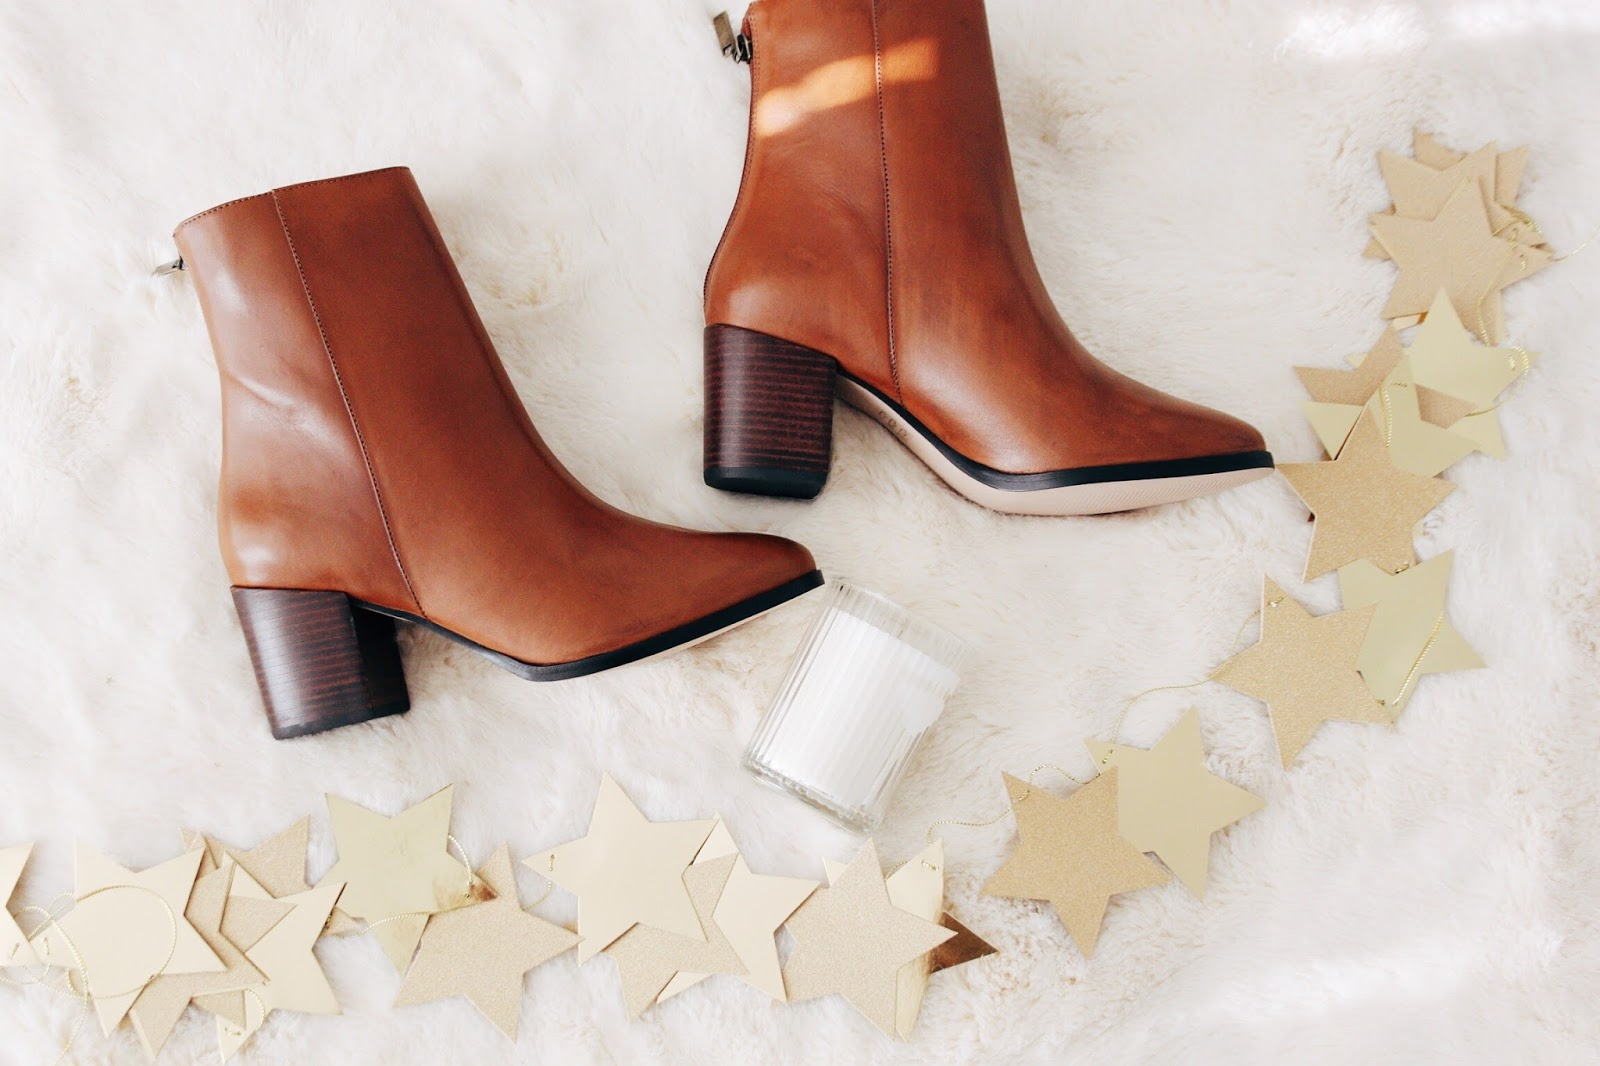 laura ashley tan leather ankle boots